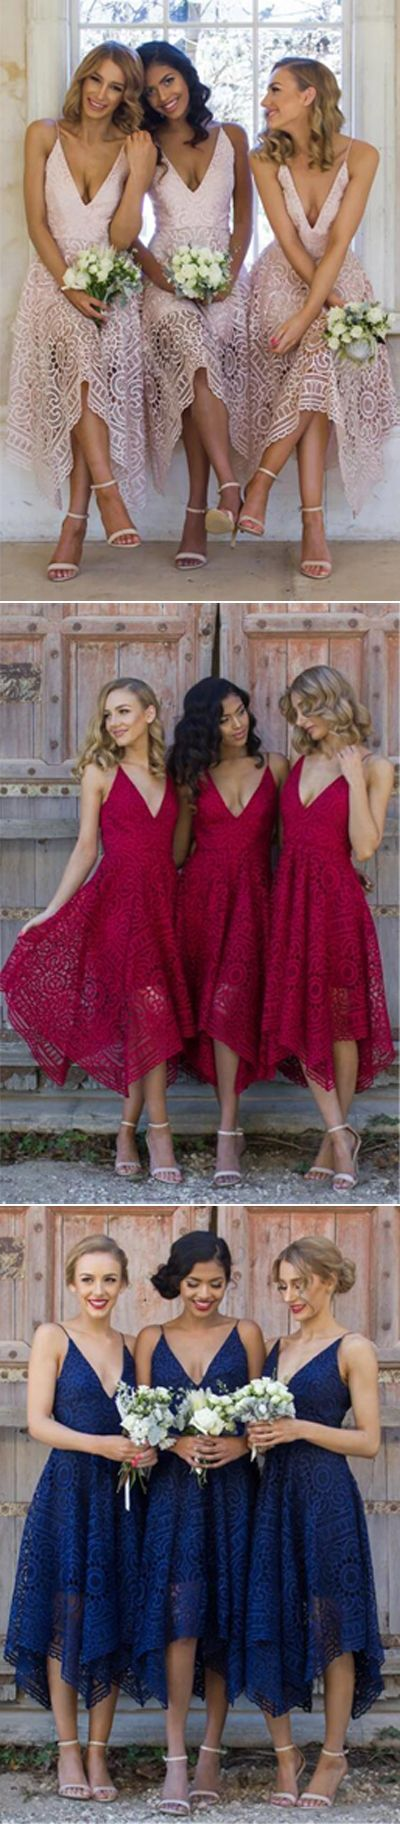 chic deep v-neck short lace bridesmaid dresses, boho fashion gowns, lace wedding party gowns. #bridesmaiddresses #Weddingsquotes